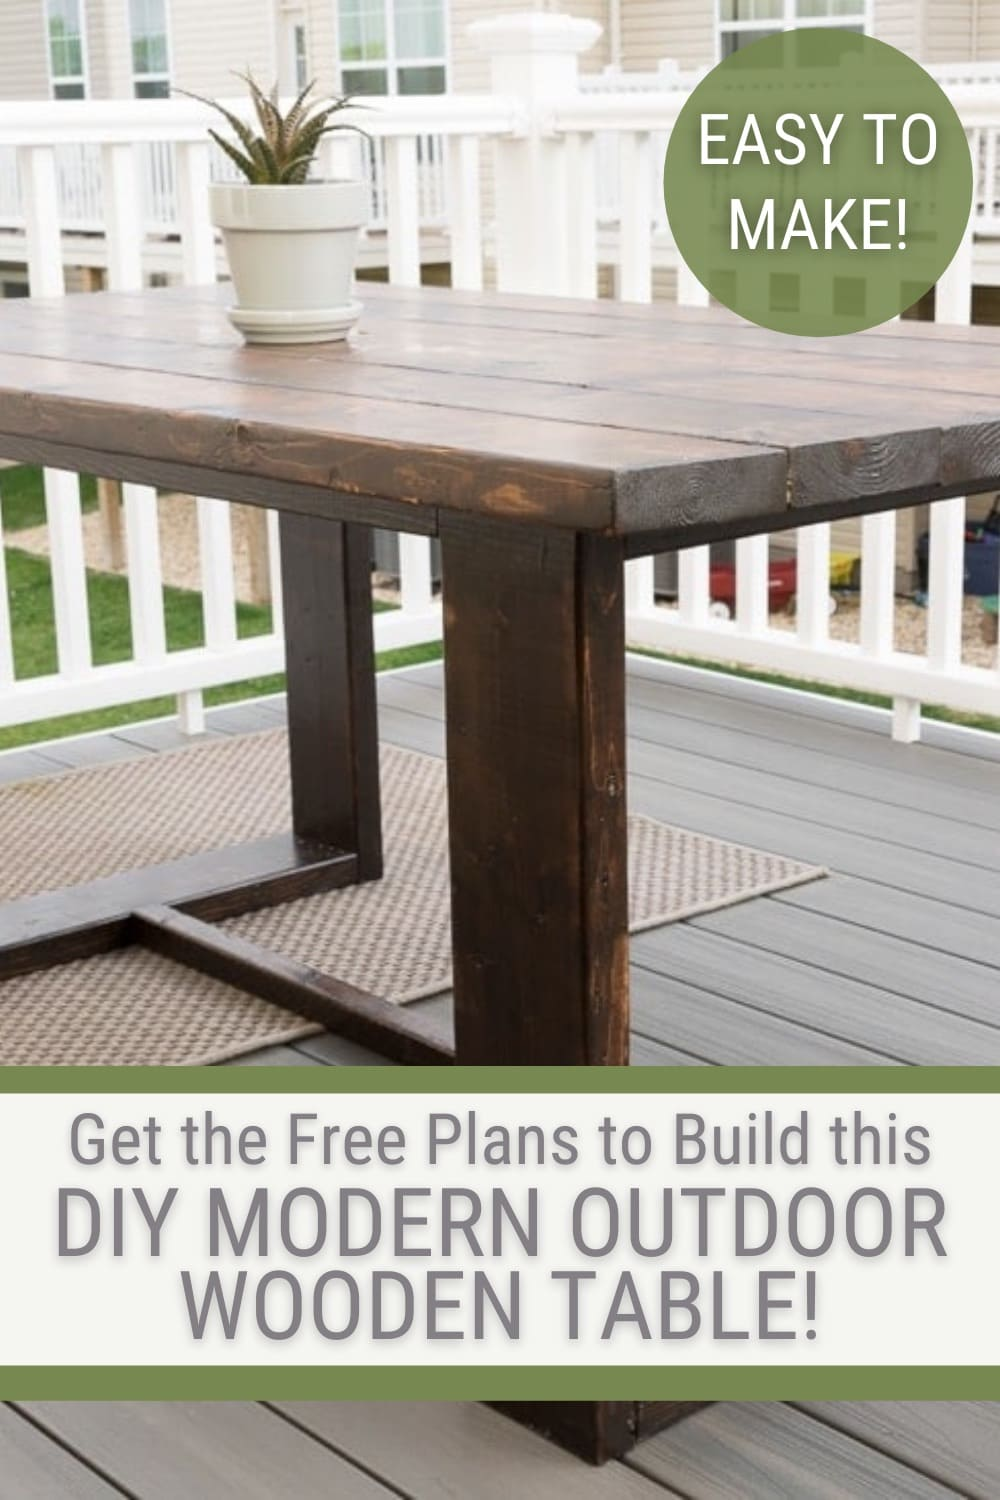 modern outdoor dining table with text Get the free plans to build this DIY modern outdoor wooden table